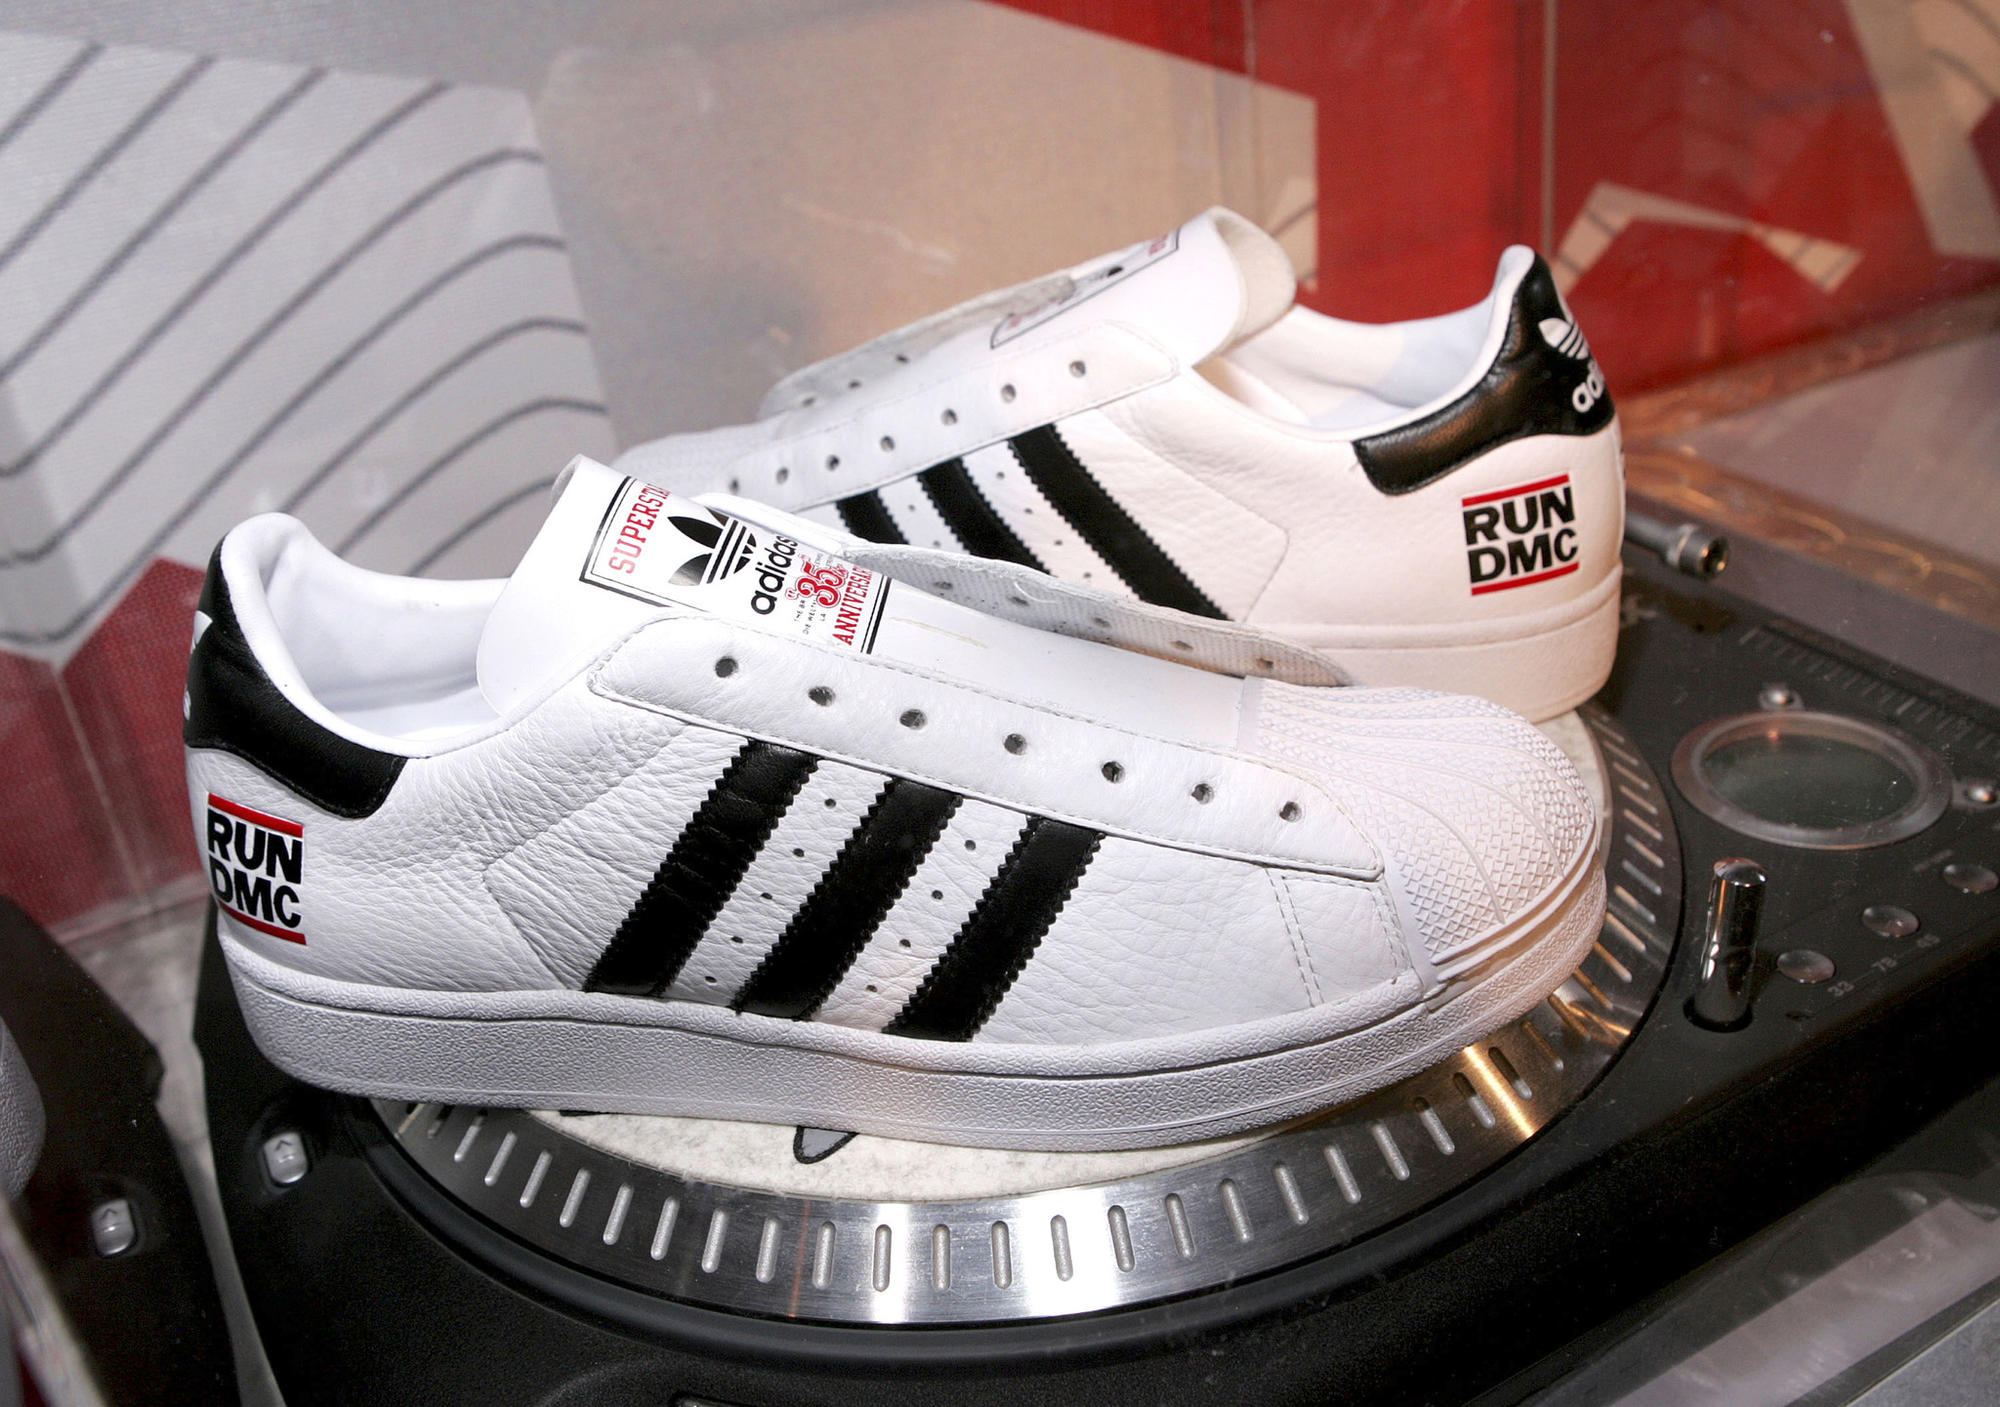 35th Anniversary Run-DMC Adidas Superstar